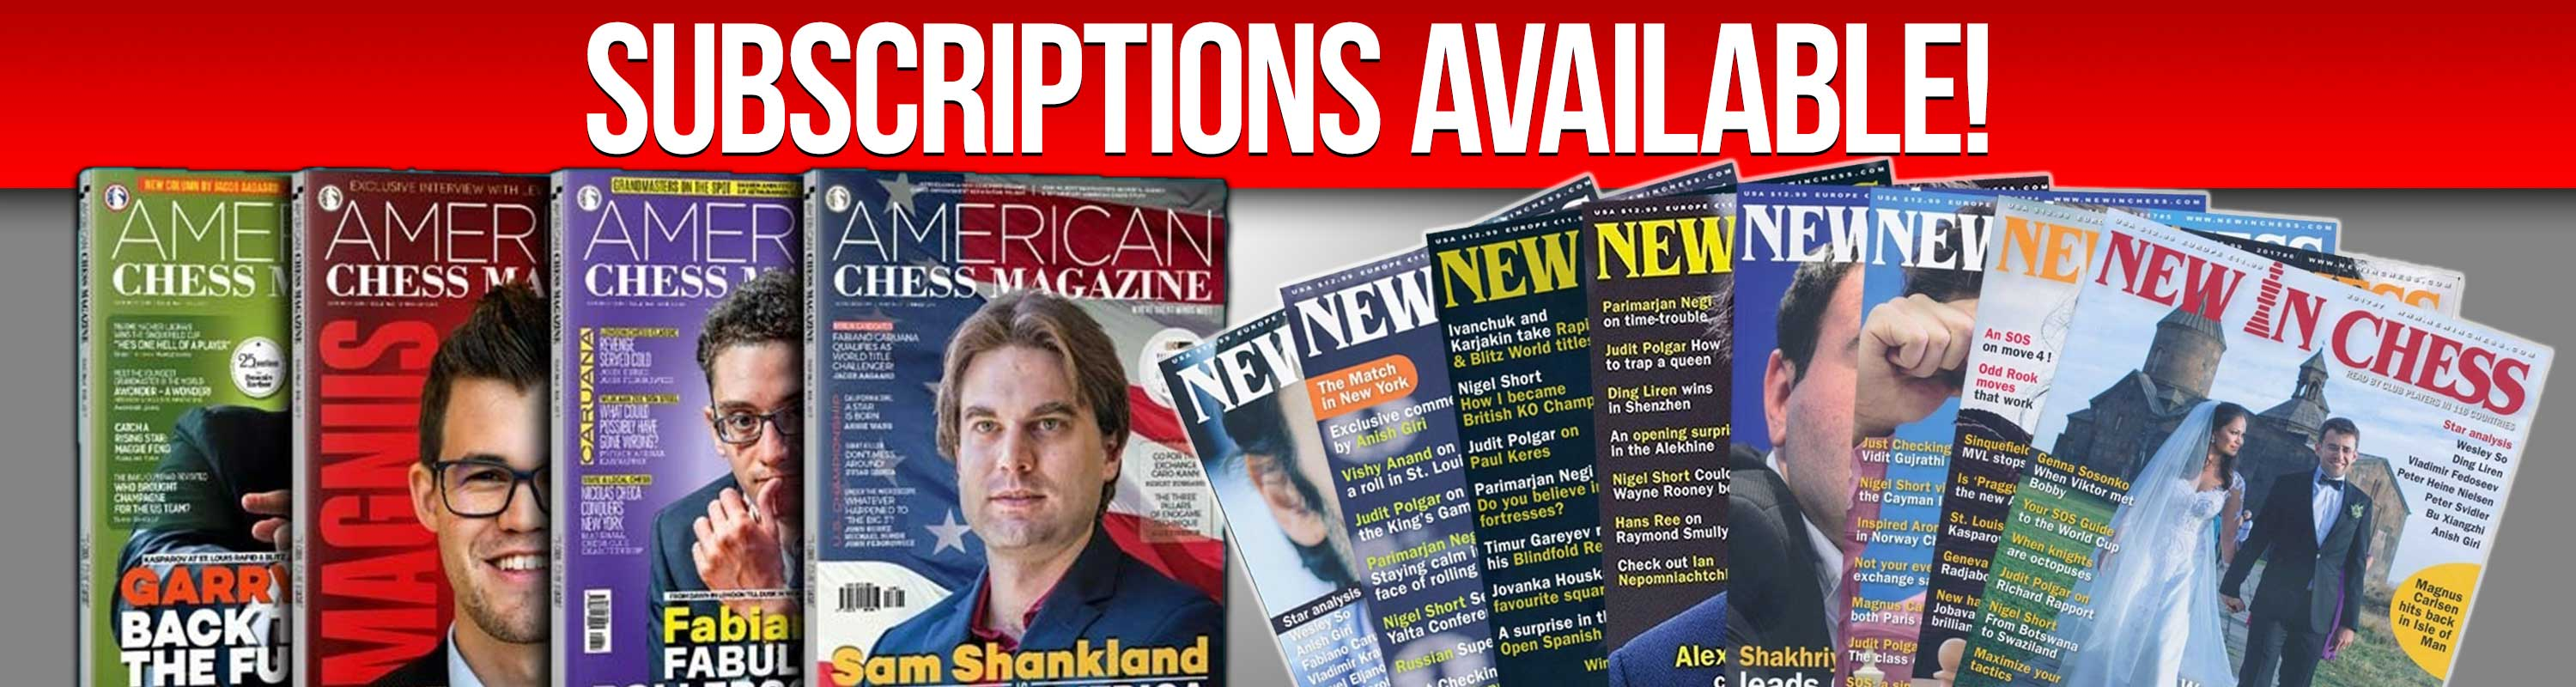 Subscriptions Available!